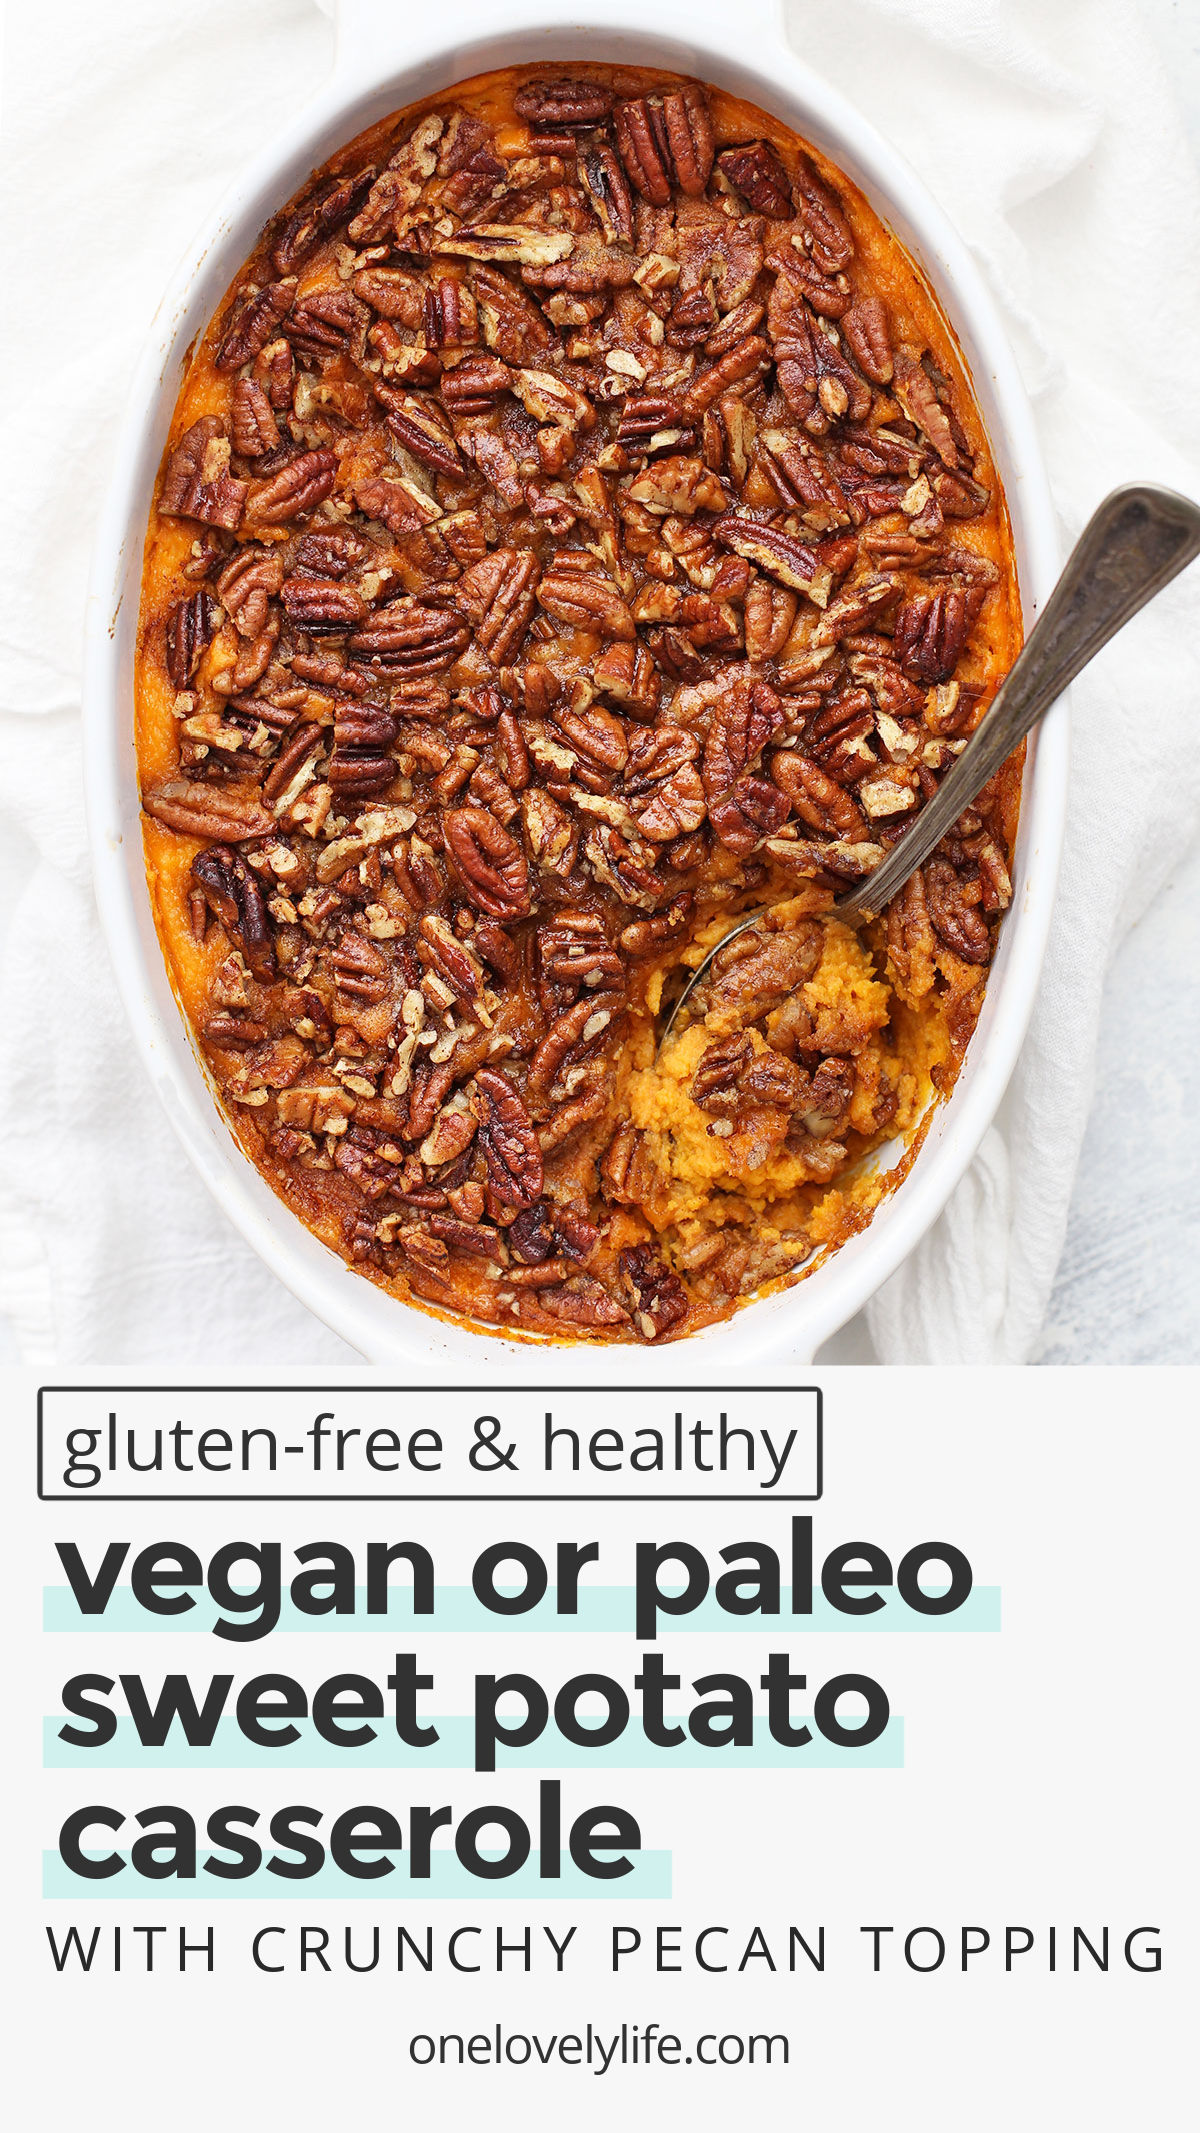 Paleo (or Vegan!) Sweet Potato Casserole - Gluten free, naturally sweetened, and totally delicious! // Vegan sweet potato casserole recipe // paleo sweet potato casserole recipe // healthy sweet potato casserole recipe // dairy free sweet potato casserole recipe // gluten free sweet potato casserole recipe // Thanksgiving side dish // Paleo thanksgiving // healthy thanksgiving recipe #sidedish #sweetpotatocasserole #paleo #vegan #glutenfree #healthy